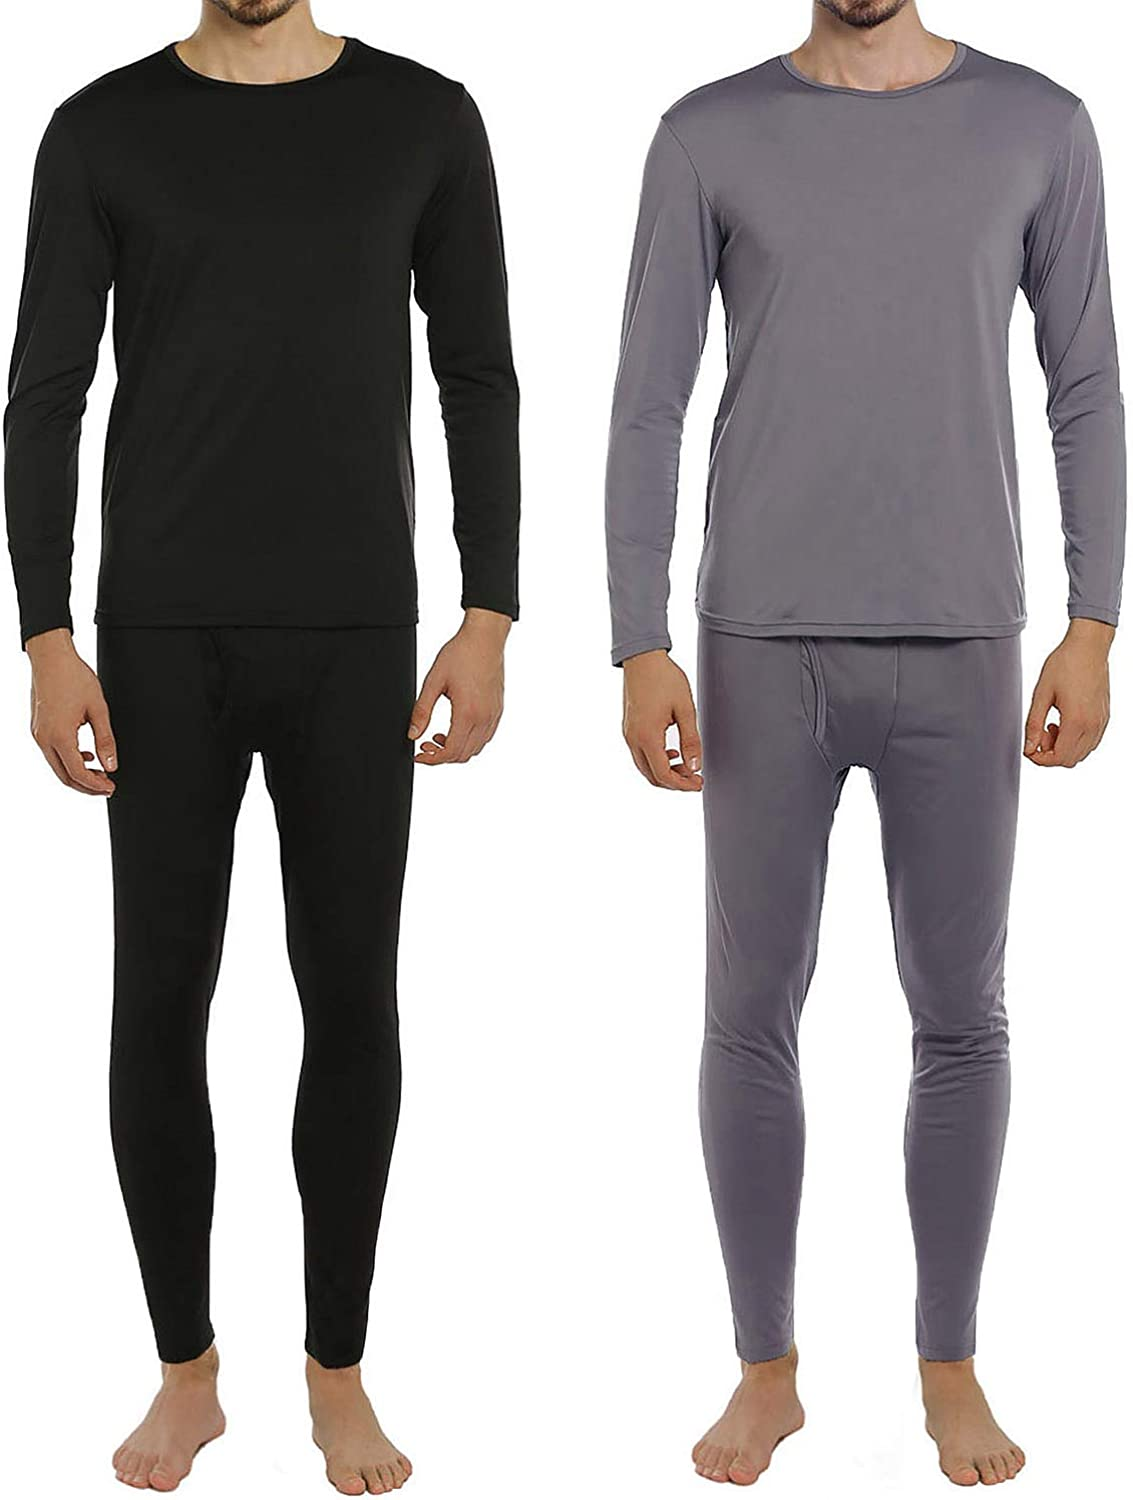 ViCherub Men's Thermal Underwear Set Long Johns Fleece Lined Warm Base Layer Thermals 2 Sets for Men at  Men's Clothing store